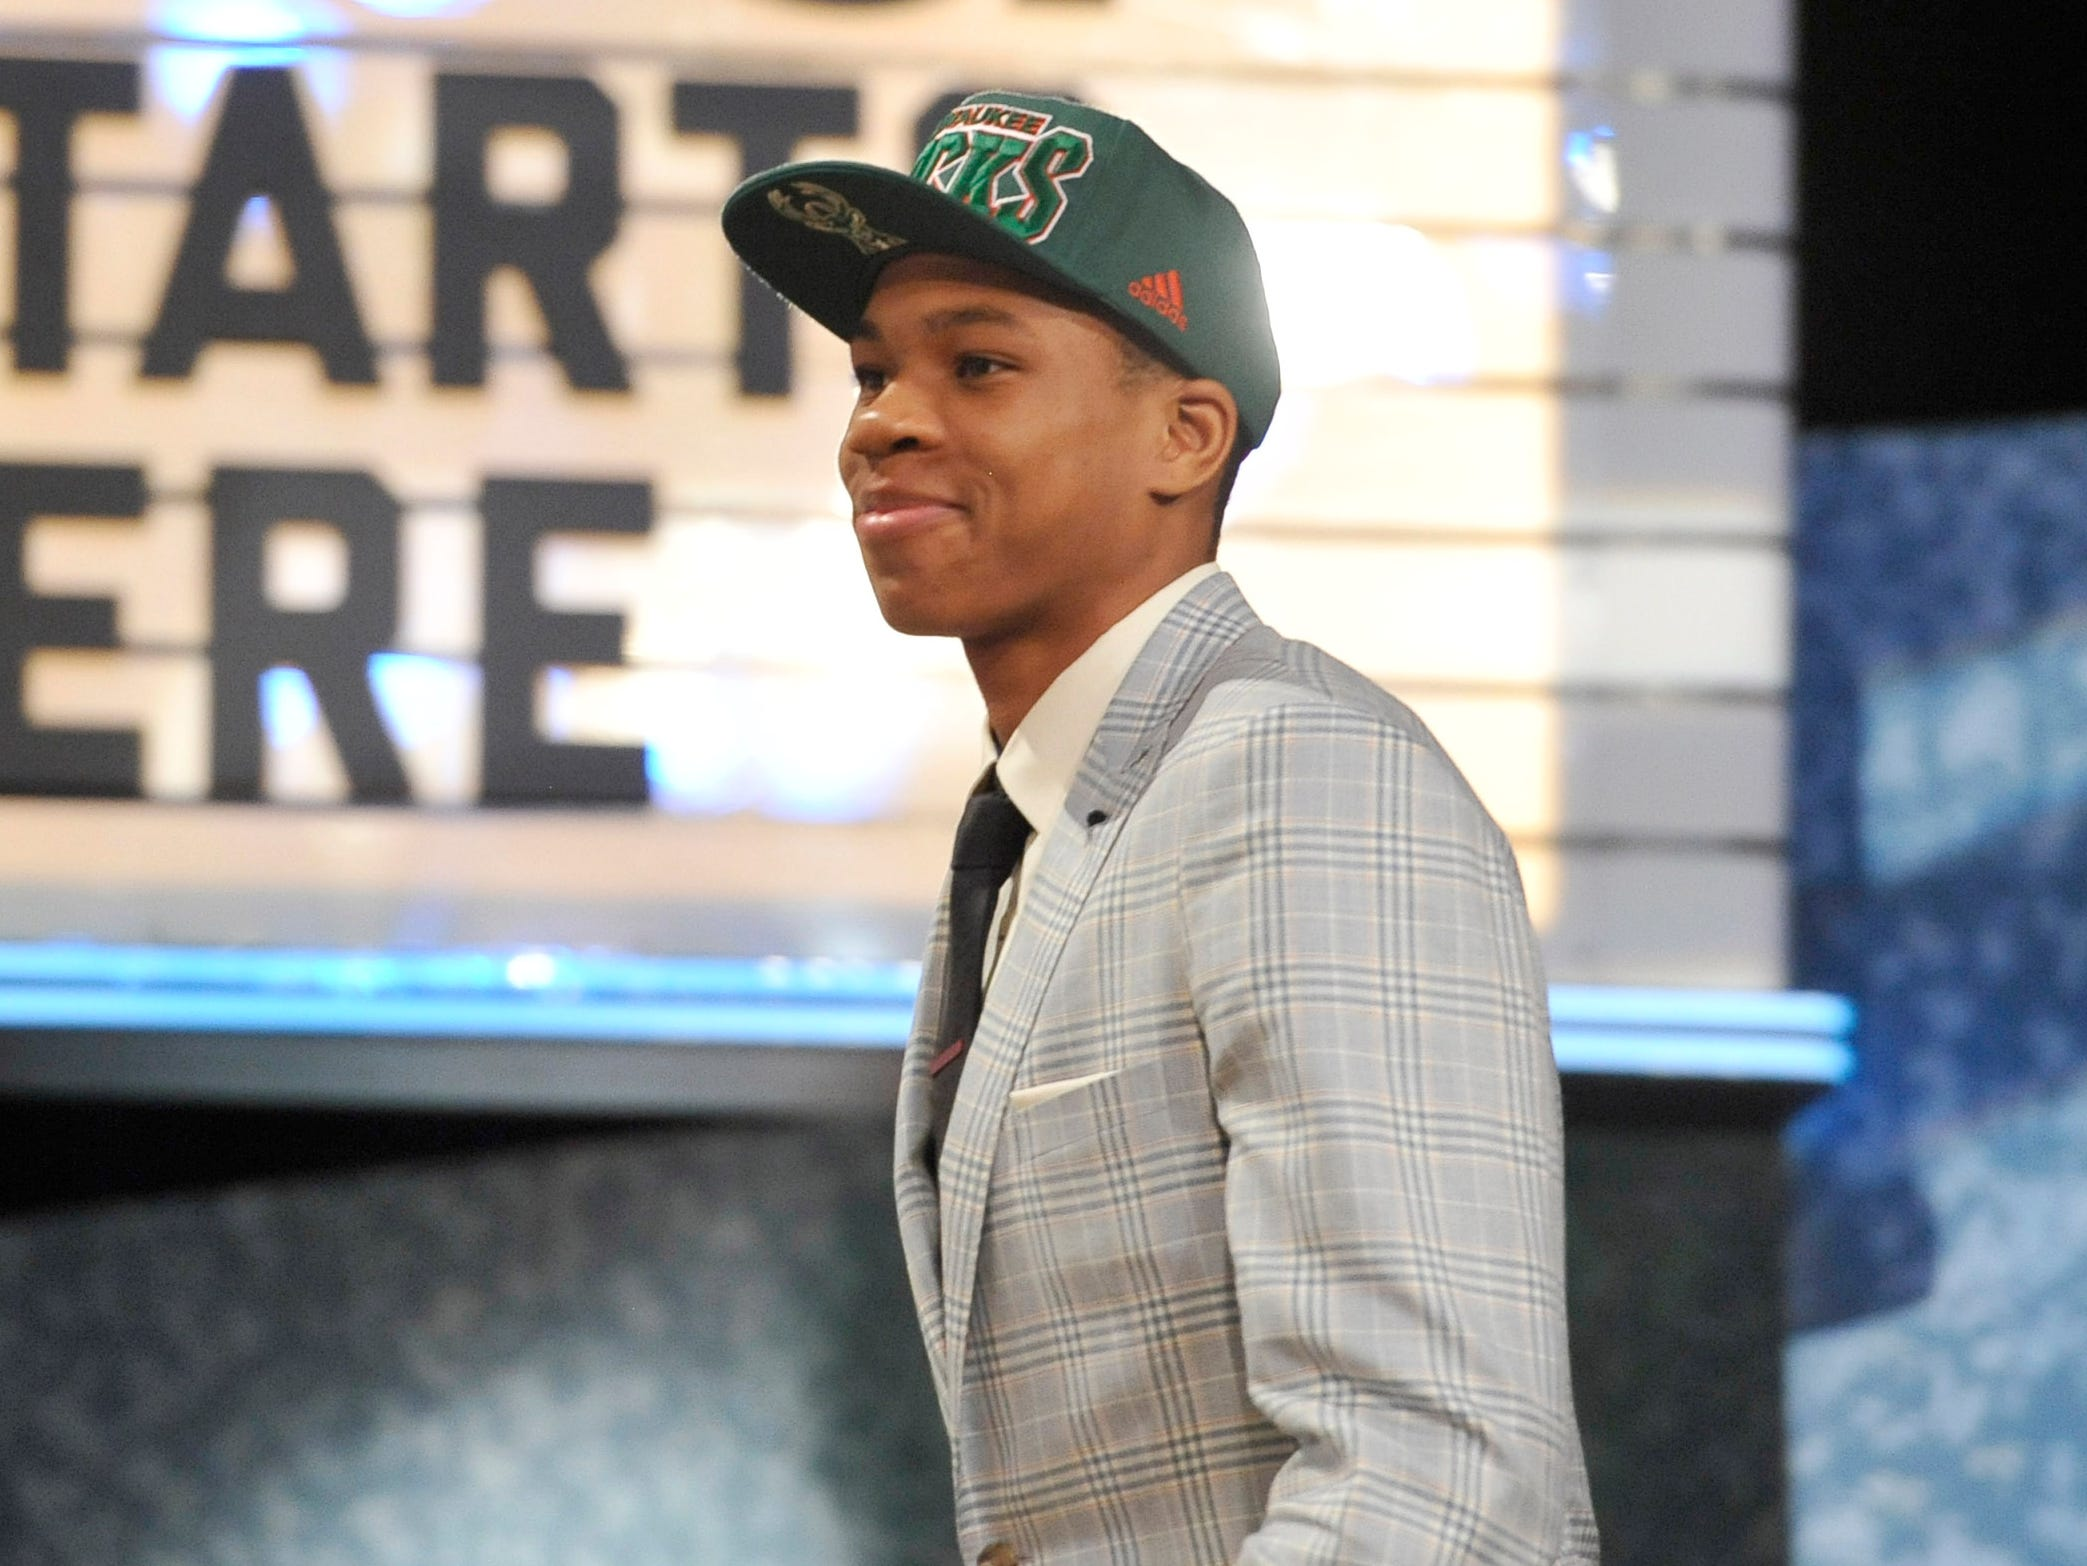 Antetokounmpo was a baby-faced 18-year-old when he was drafted 15th overall by the Bucks in 2013.